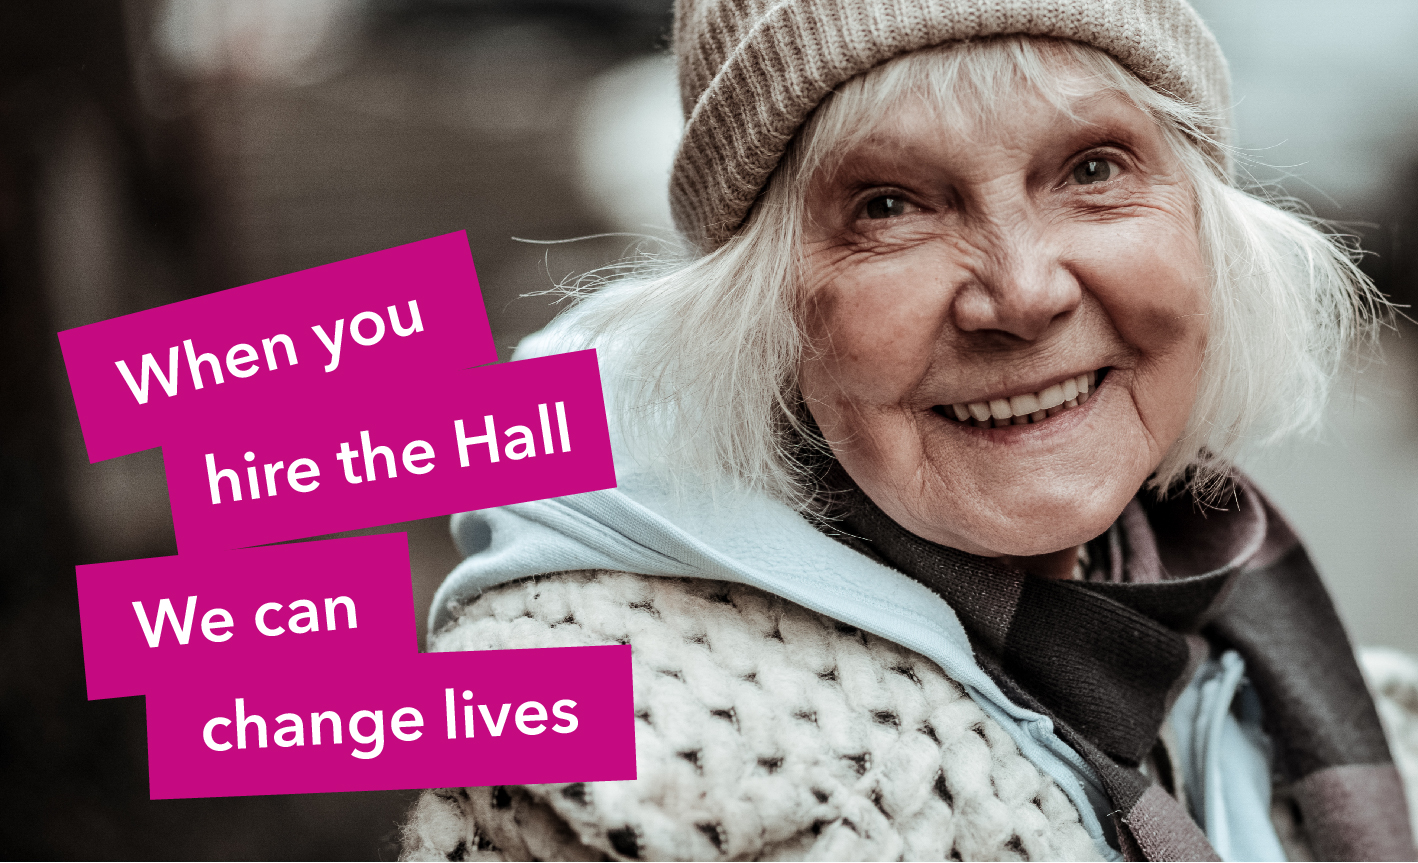 When you hire the Hall, we can change lives